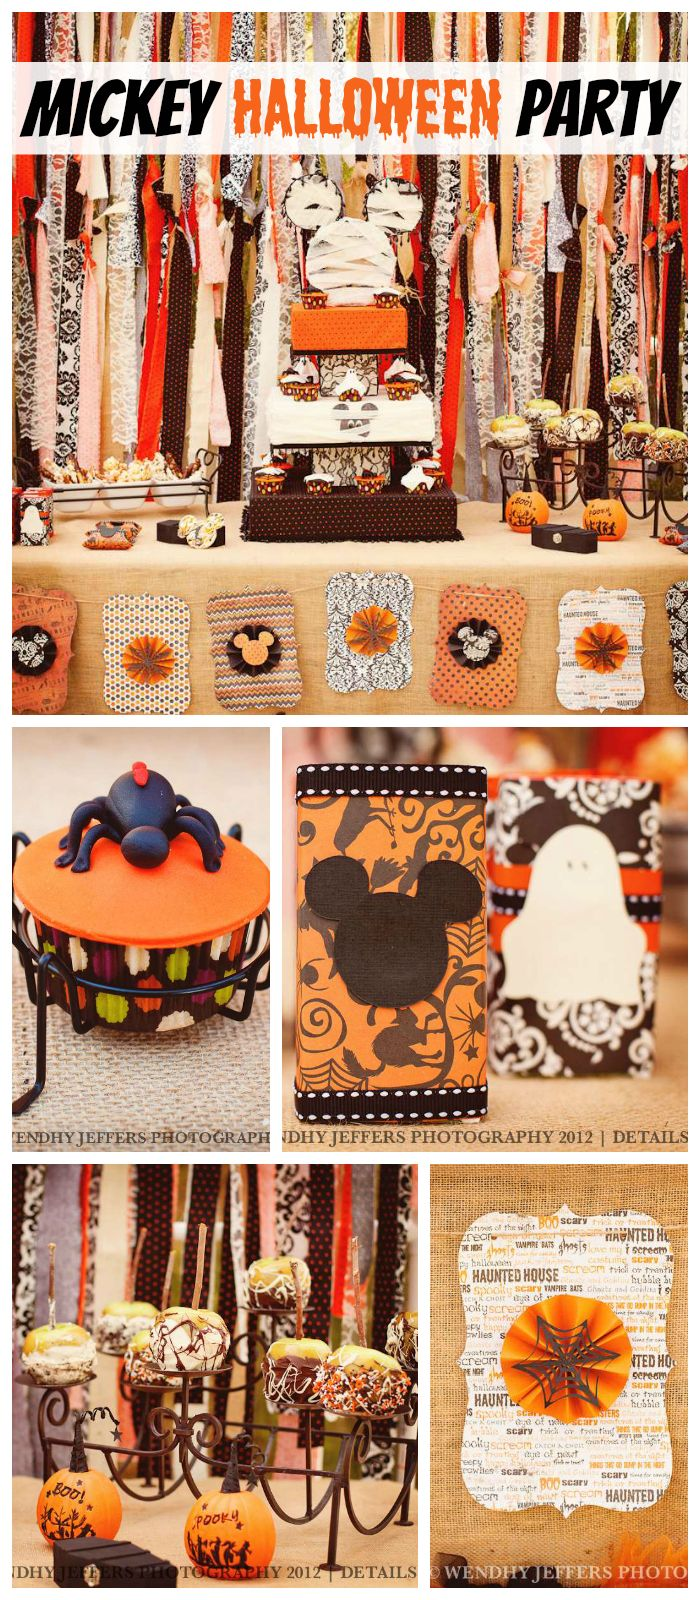 Best 25+ Mickey halloween party ideas on Pinterest | Mickey party ...